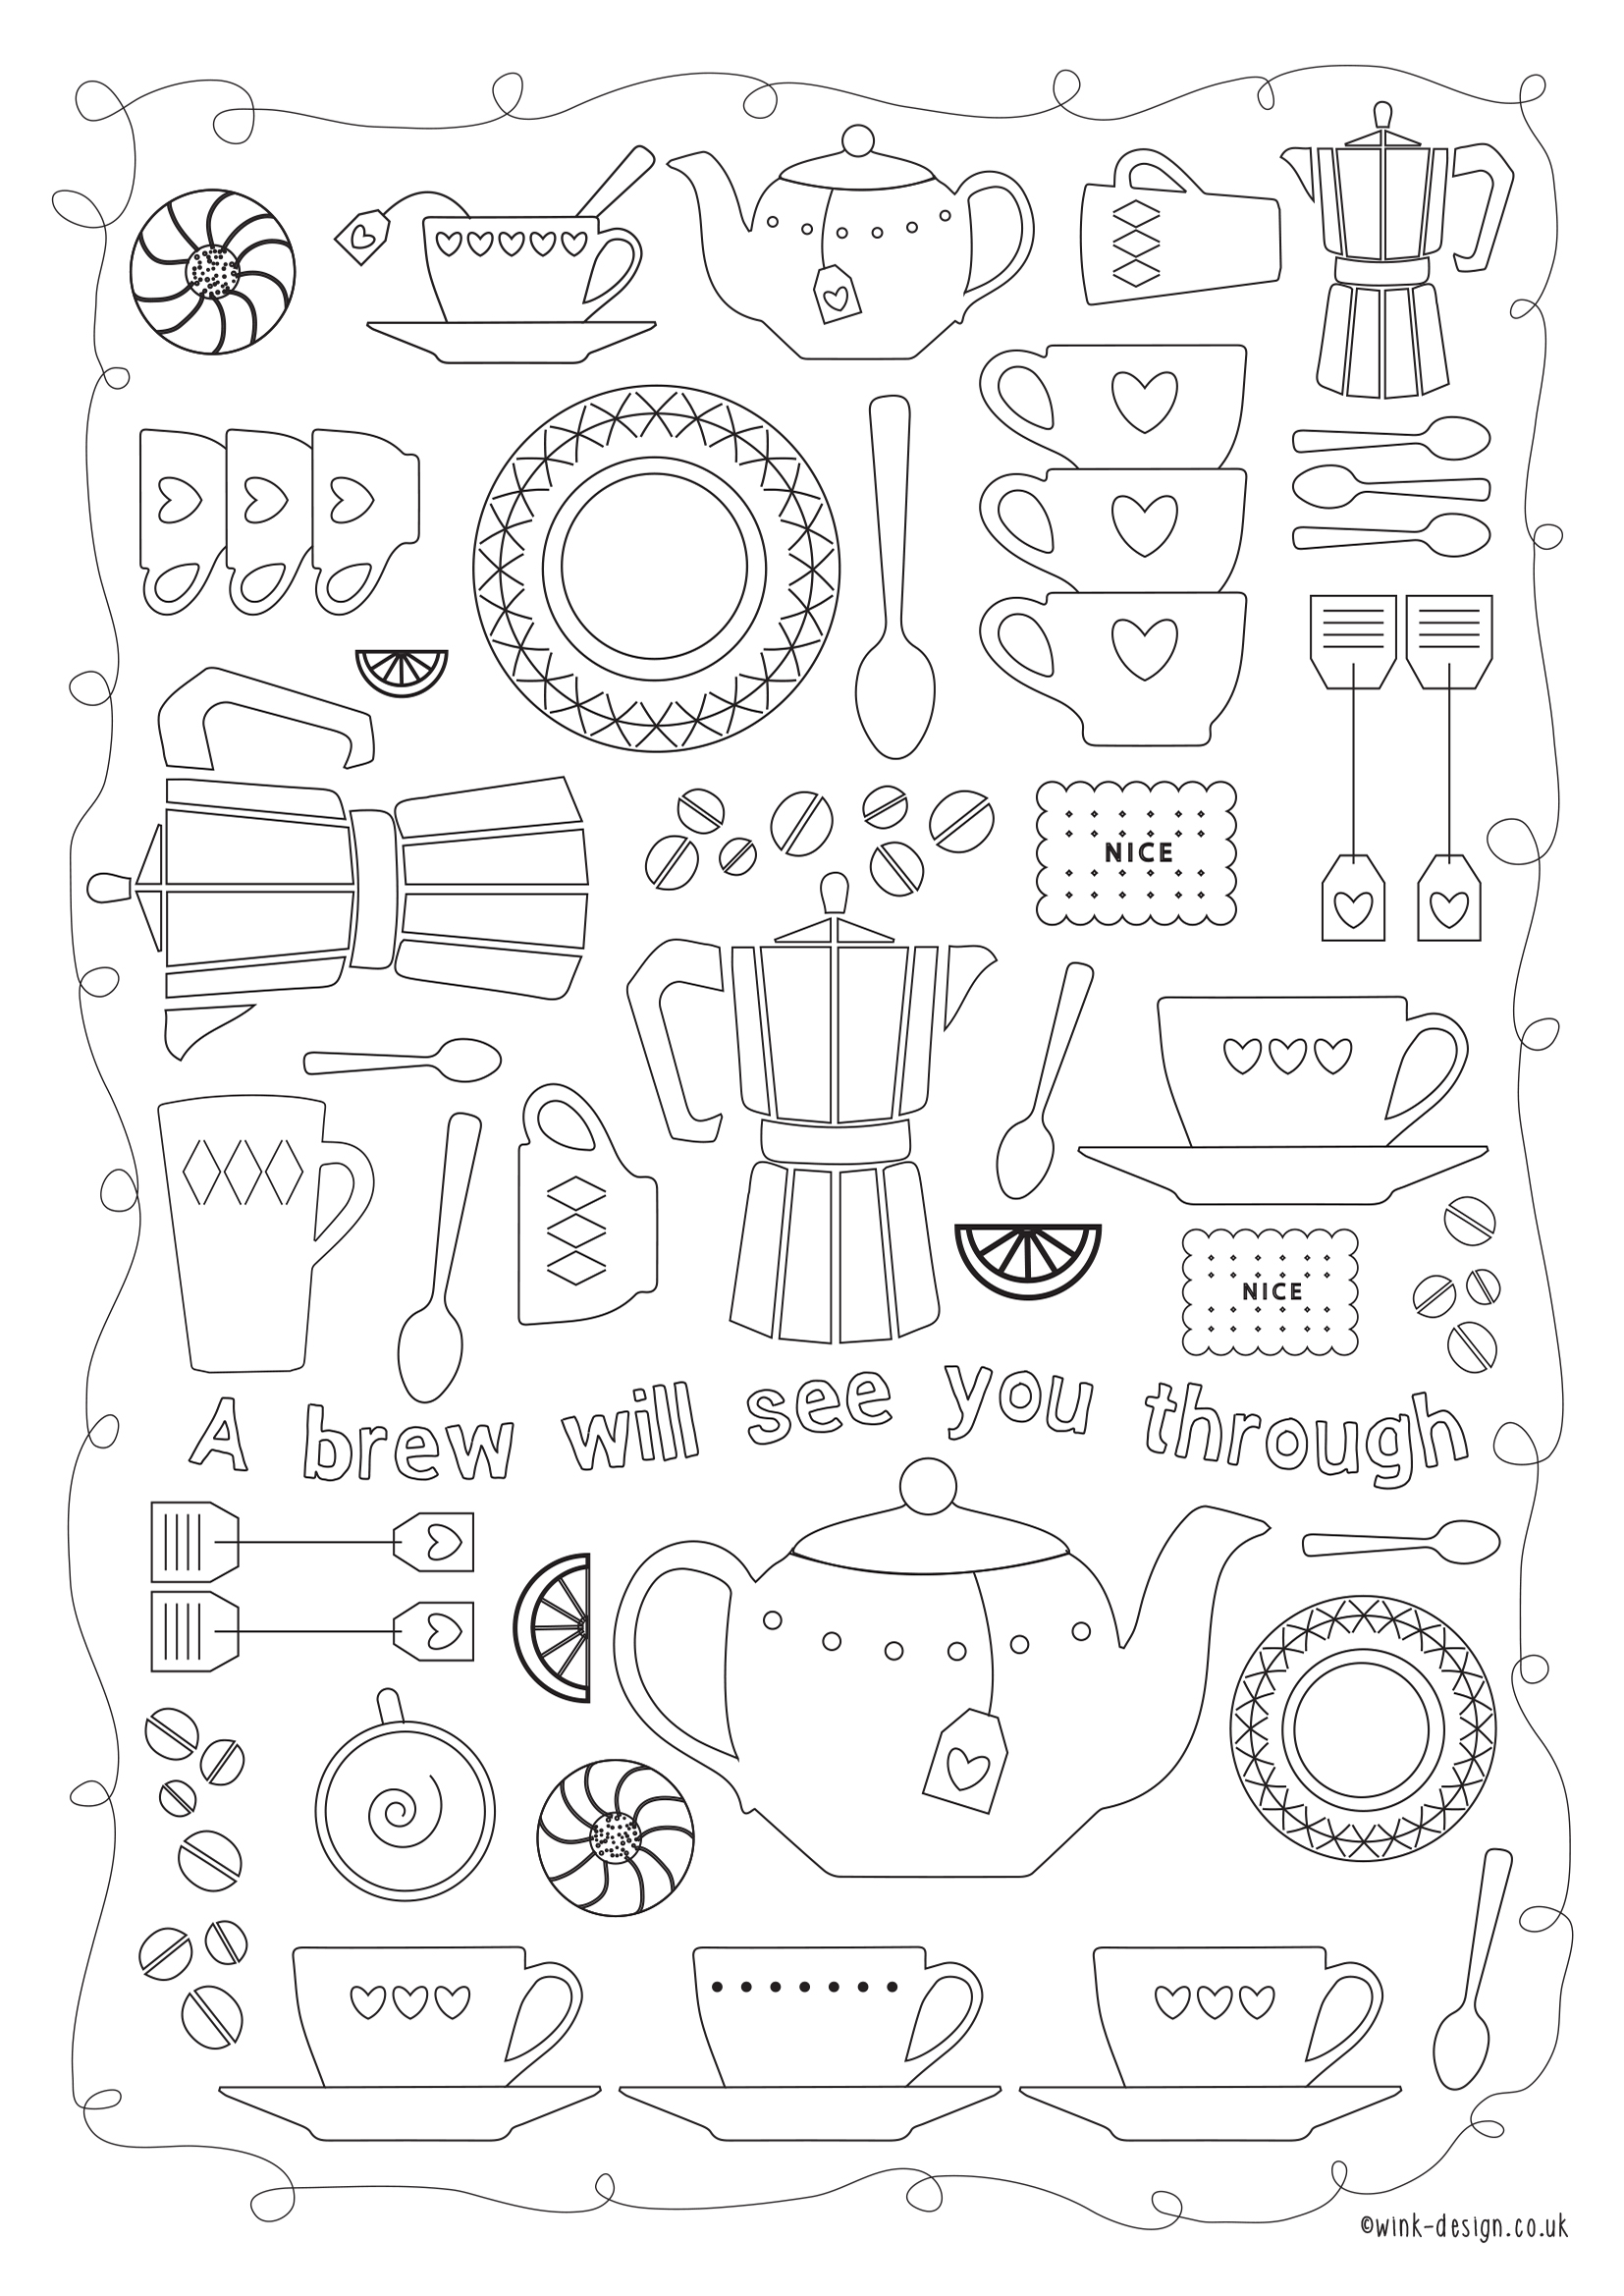 Free Printable Adult Colouring Pages - Inspirational ... | free printable coloring pages for adults inspirational quotes